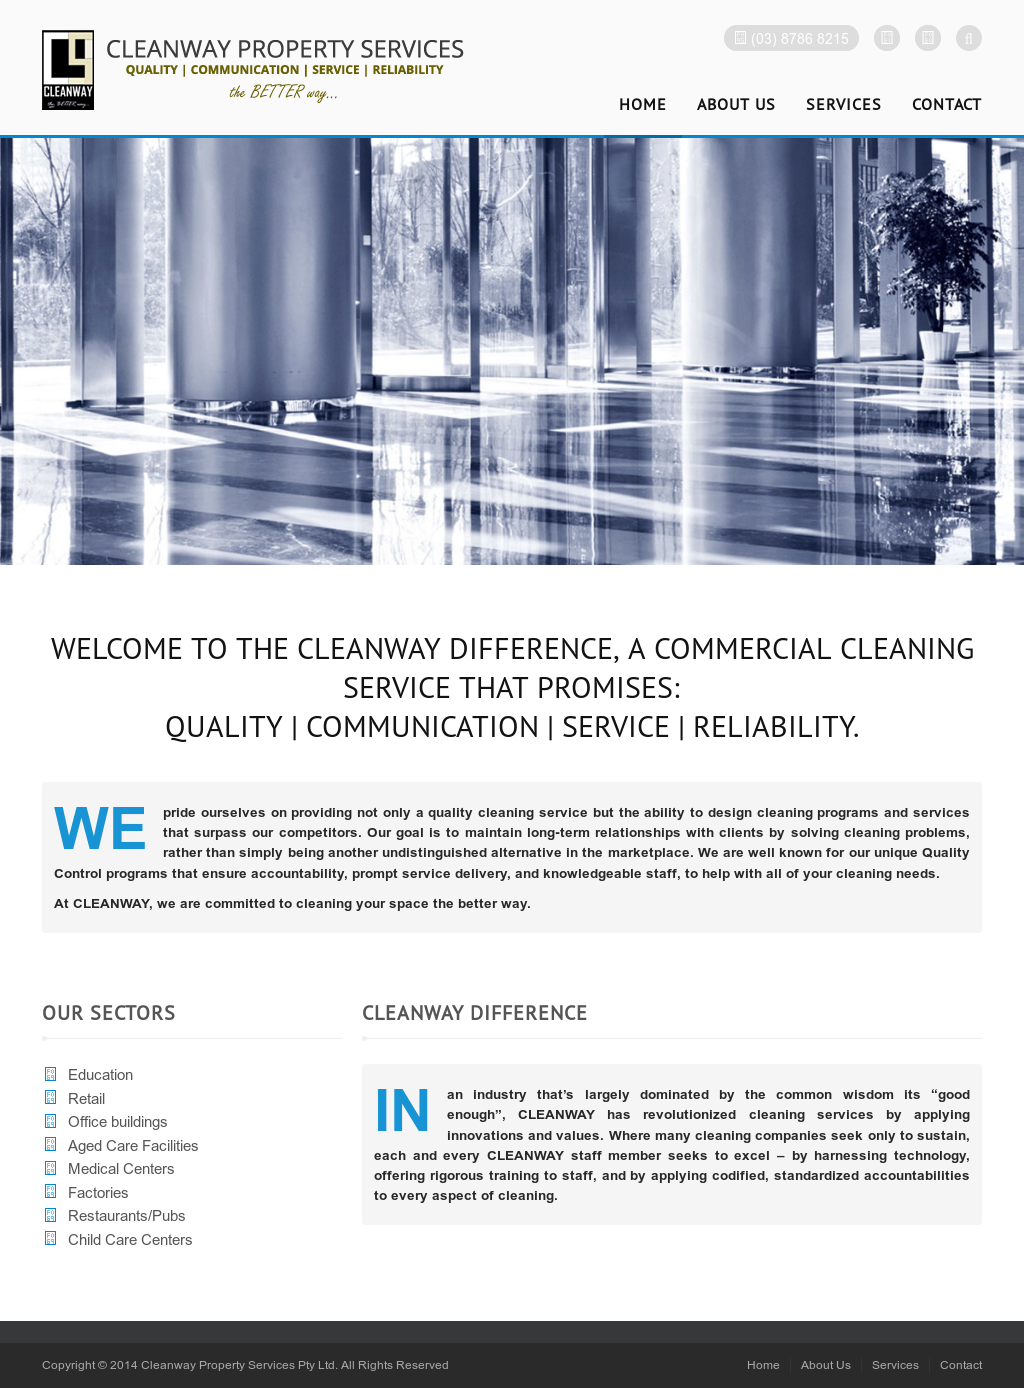 Cleanway Property Services